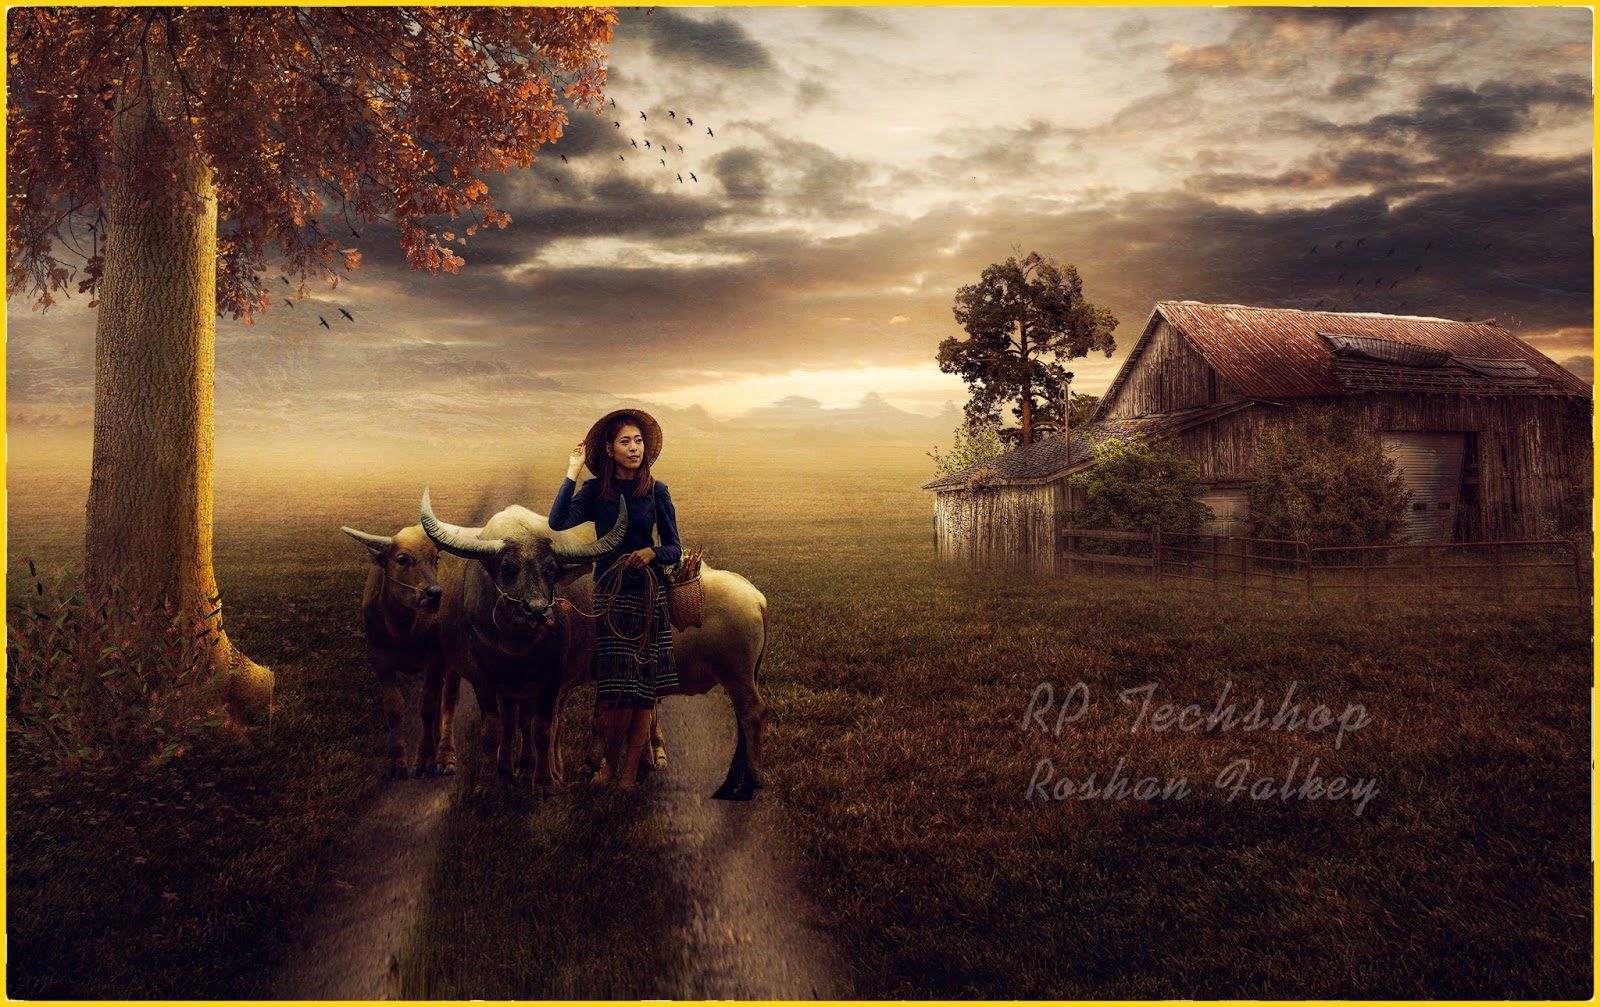 Buffalo girl photo manipulation photo compositing tutorial hello friends in this photoshop tutorial i will show you about photoshop manipulation photo compositing buffalo girl baditri Gallery